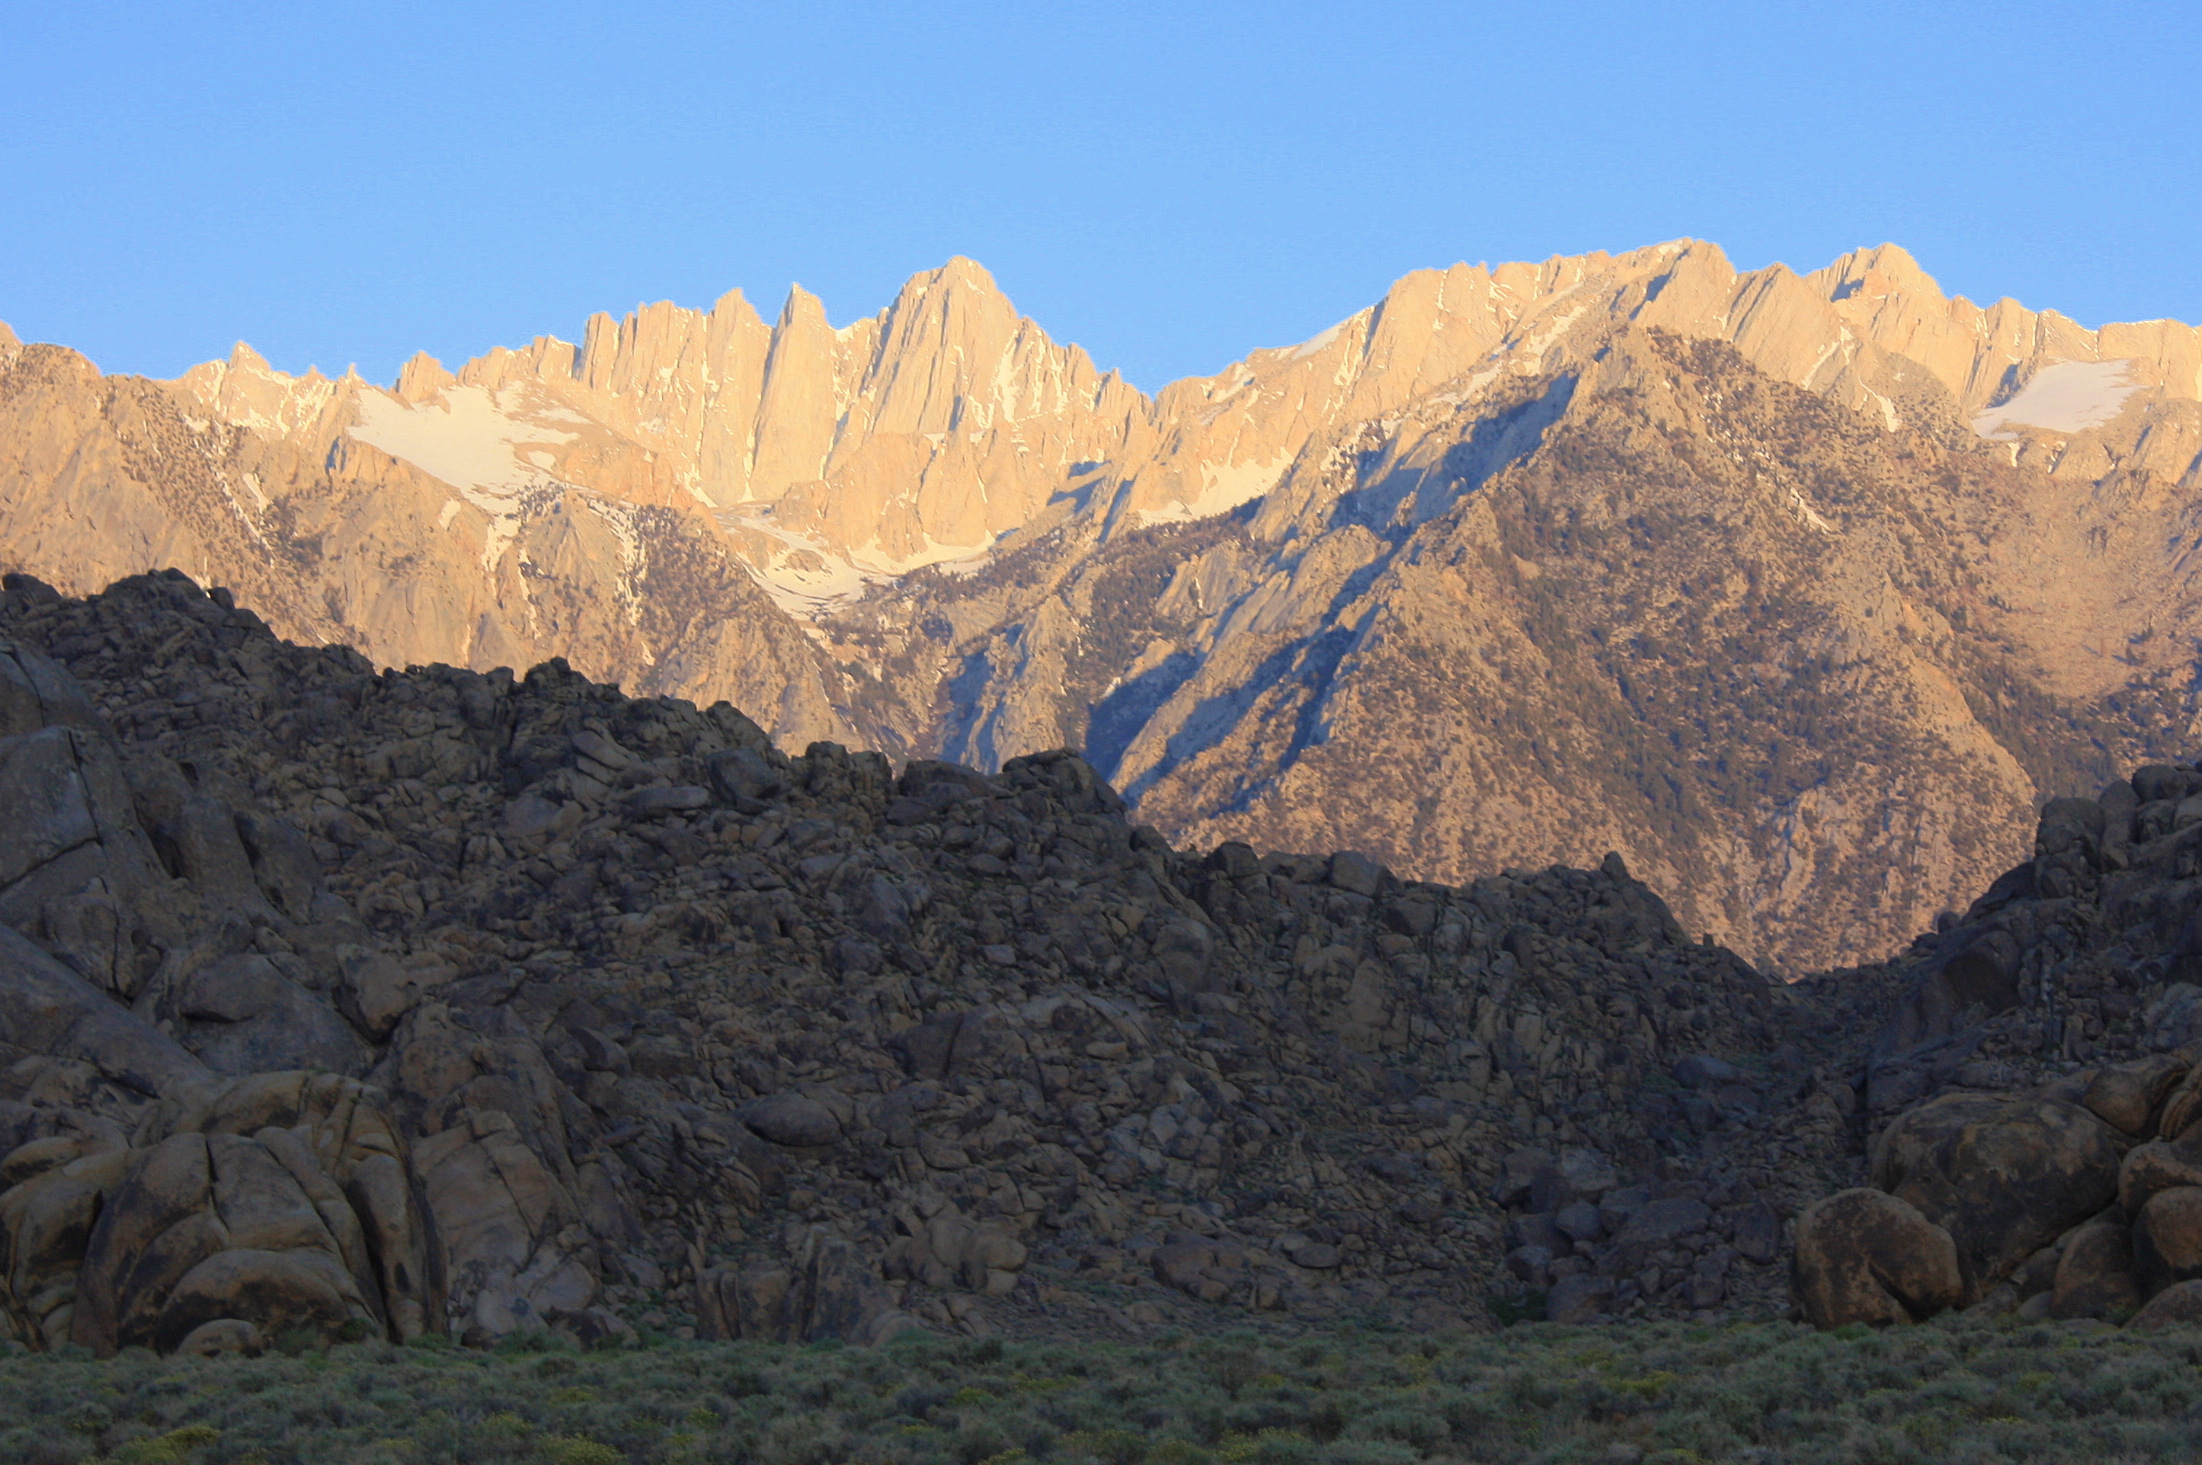 Mount Whitney (California)  14,497 ft/4,419 m Sierra Nevada ¬– Highest point in the Continental U.S.